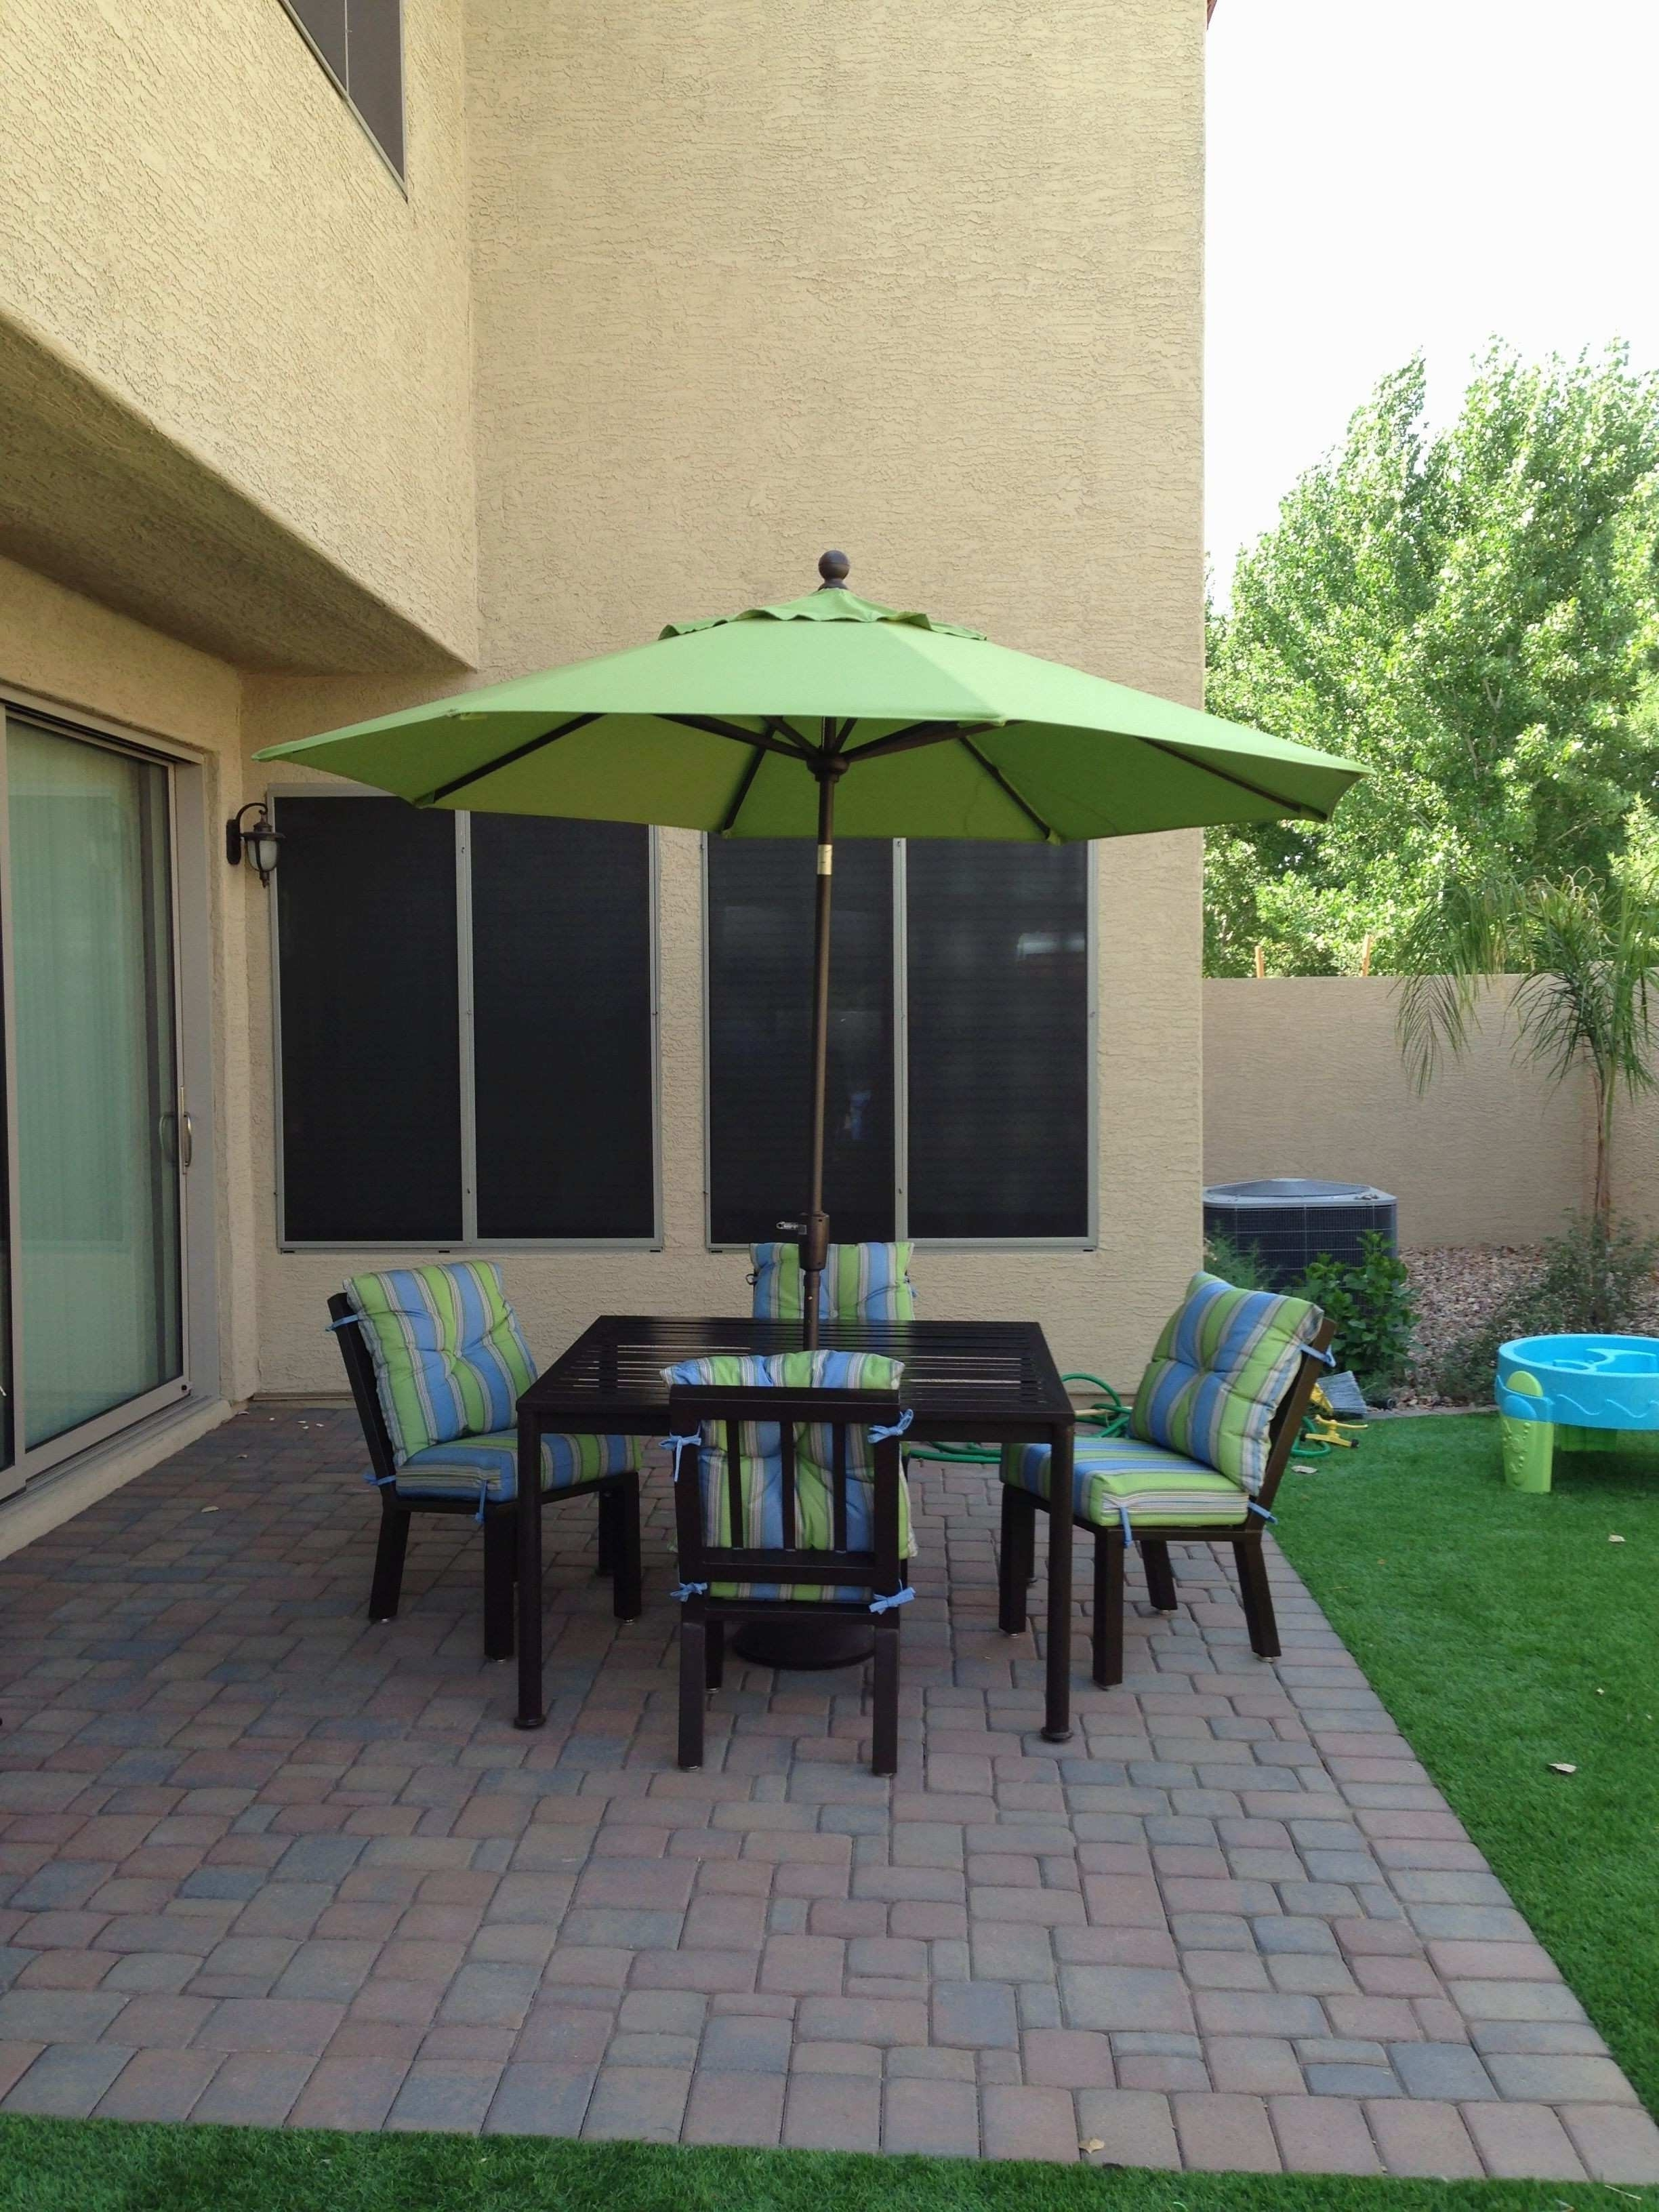 Garden Treasures Patio Umbrella Beautiful 26 Lovely Treasure Garden Regarding Well Known Garden Treasures Patio Umbrellas (View 5 of 20)